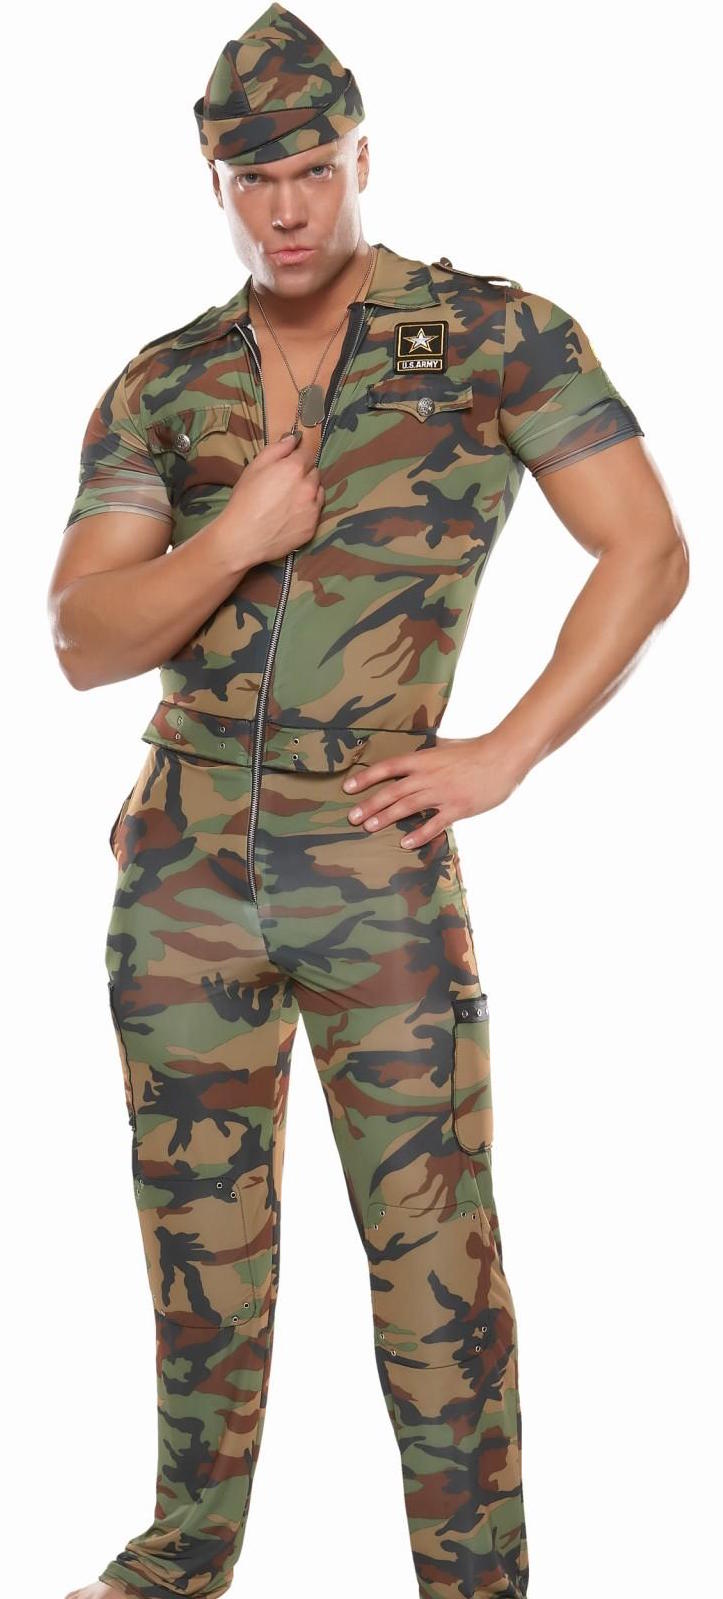 sergeant in arms costume